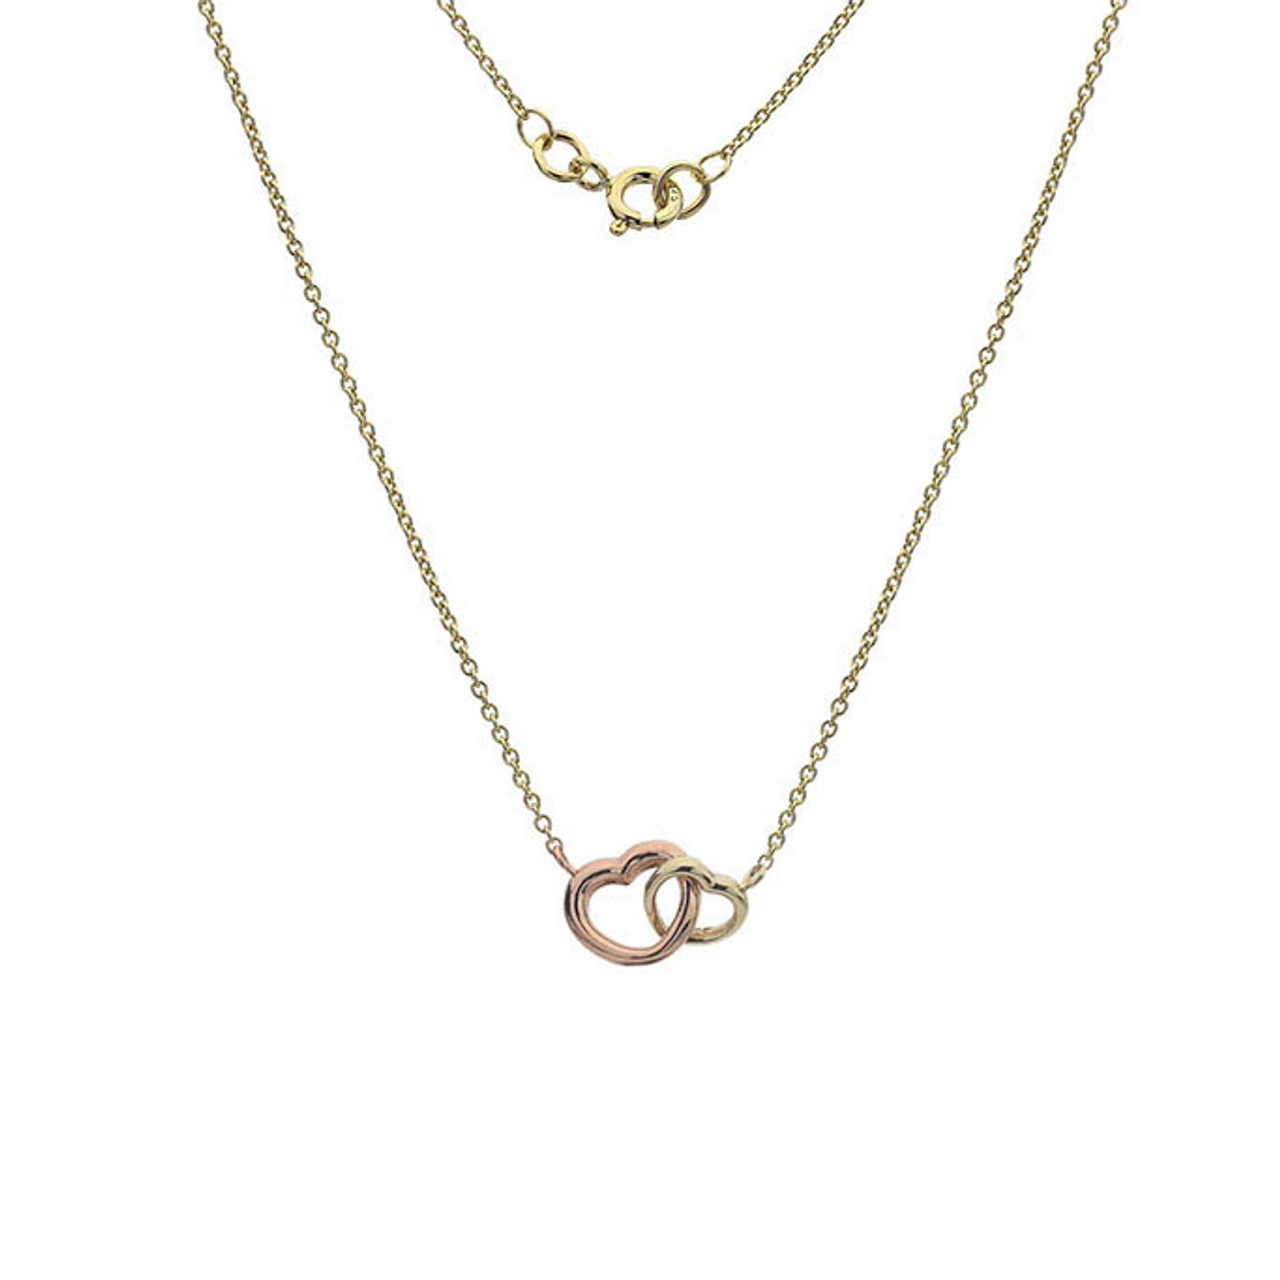 9ct Yellow & Rose Gold Heart Pendant on Chain